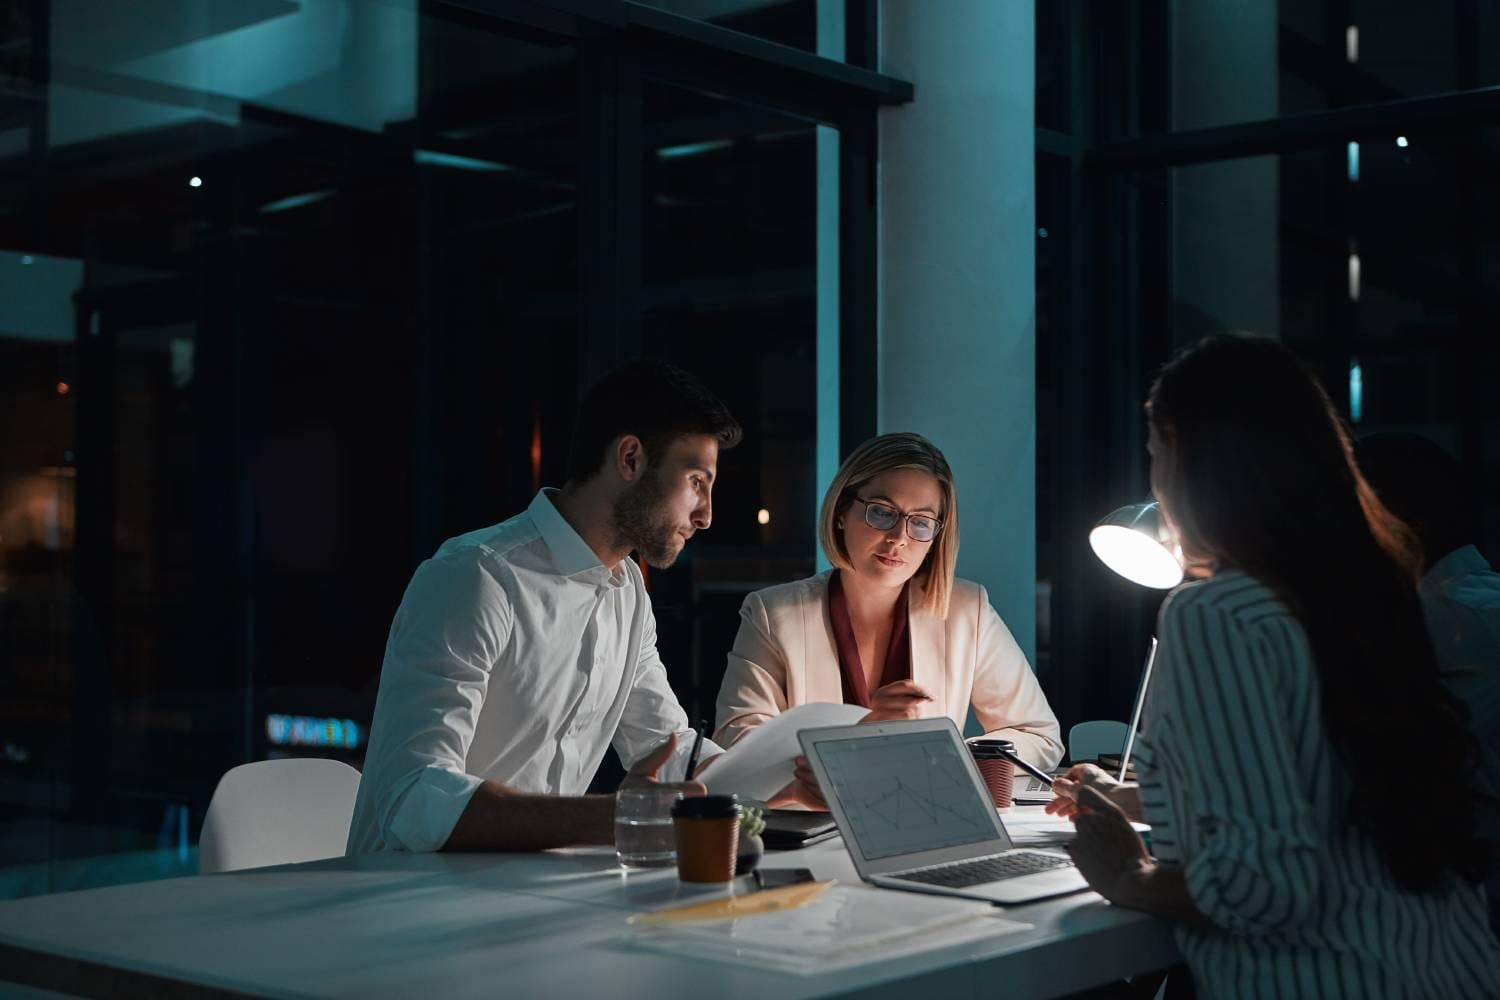 Three business people with computer with a dark background